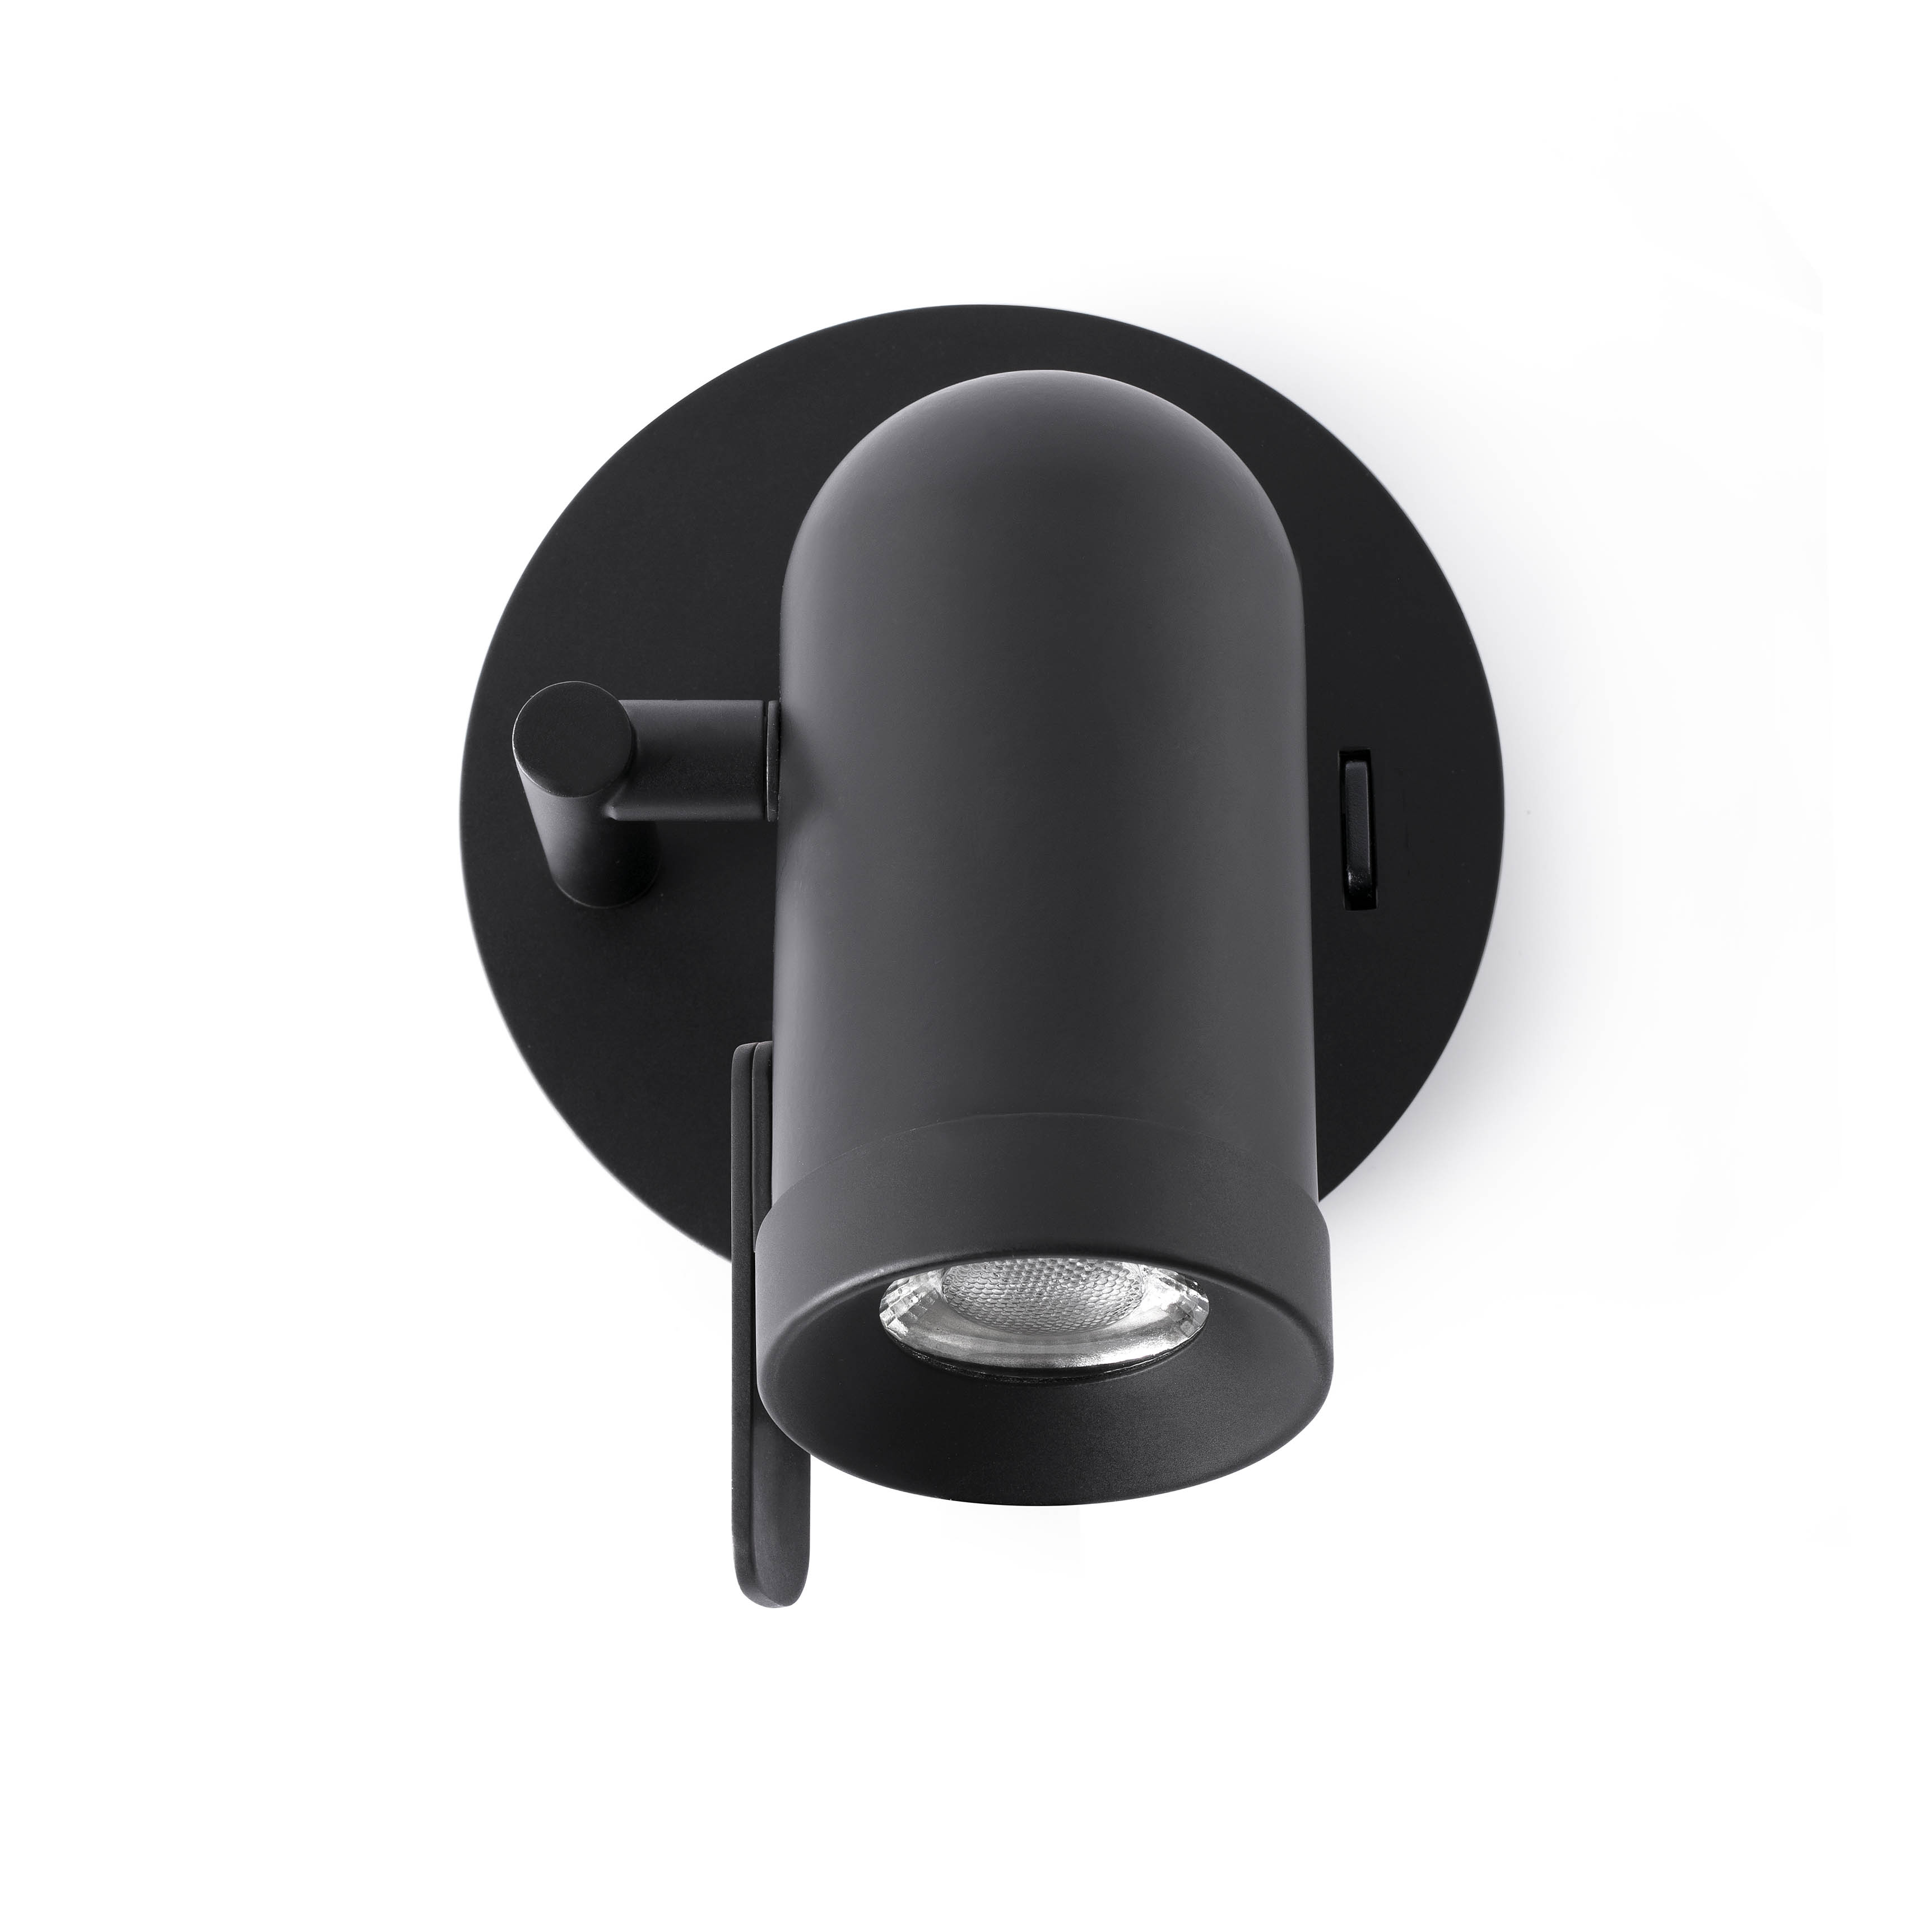 Aplique pared para LED metal negro moderno 543521